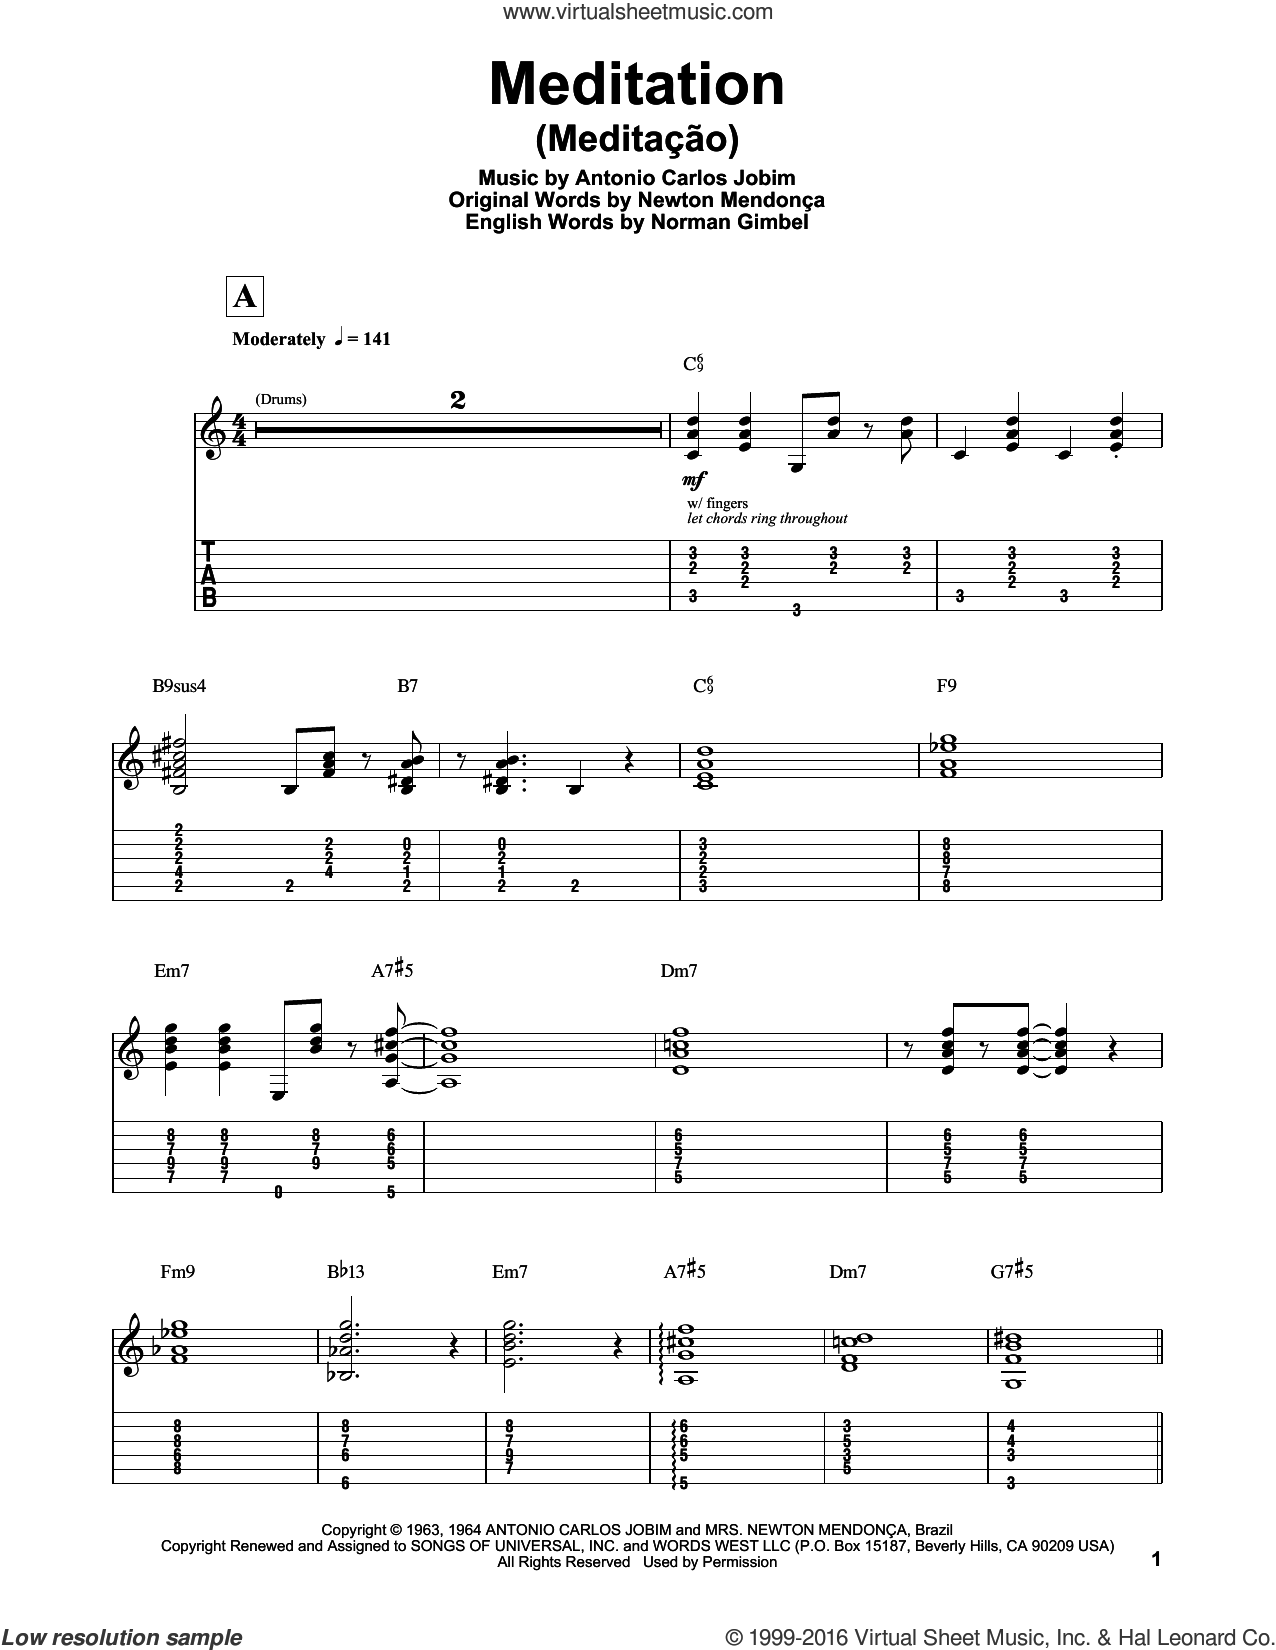 Meditation (Meditacao) sheet music for guitar (tablature, play-along) by Antonio Carlos Jobim, Charlie Byrd w/The Walter Raim Strings, Newton MendonA�A�a, Newton Mendonca and Norman Gimbel, intermediate skill level